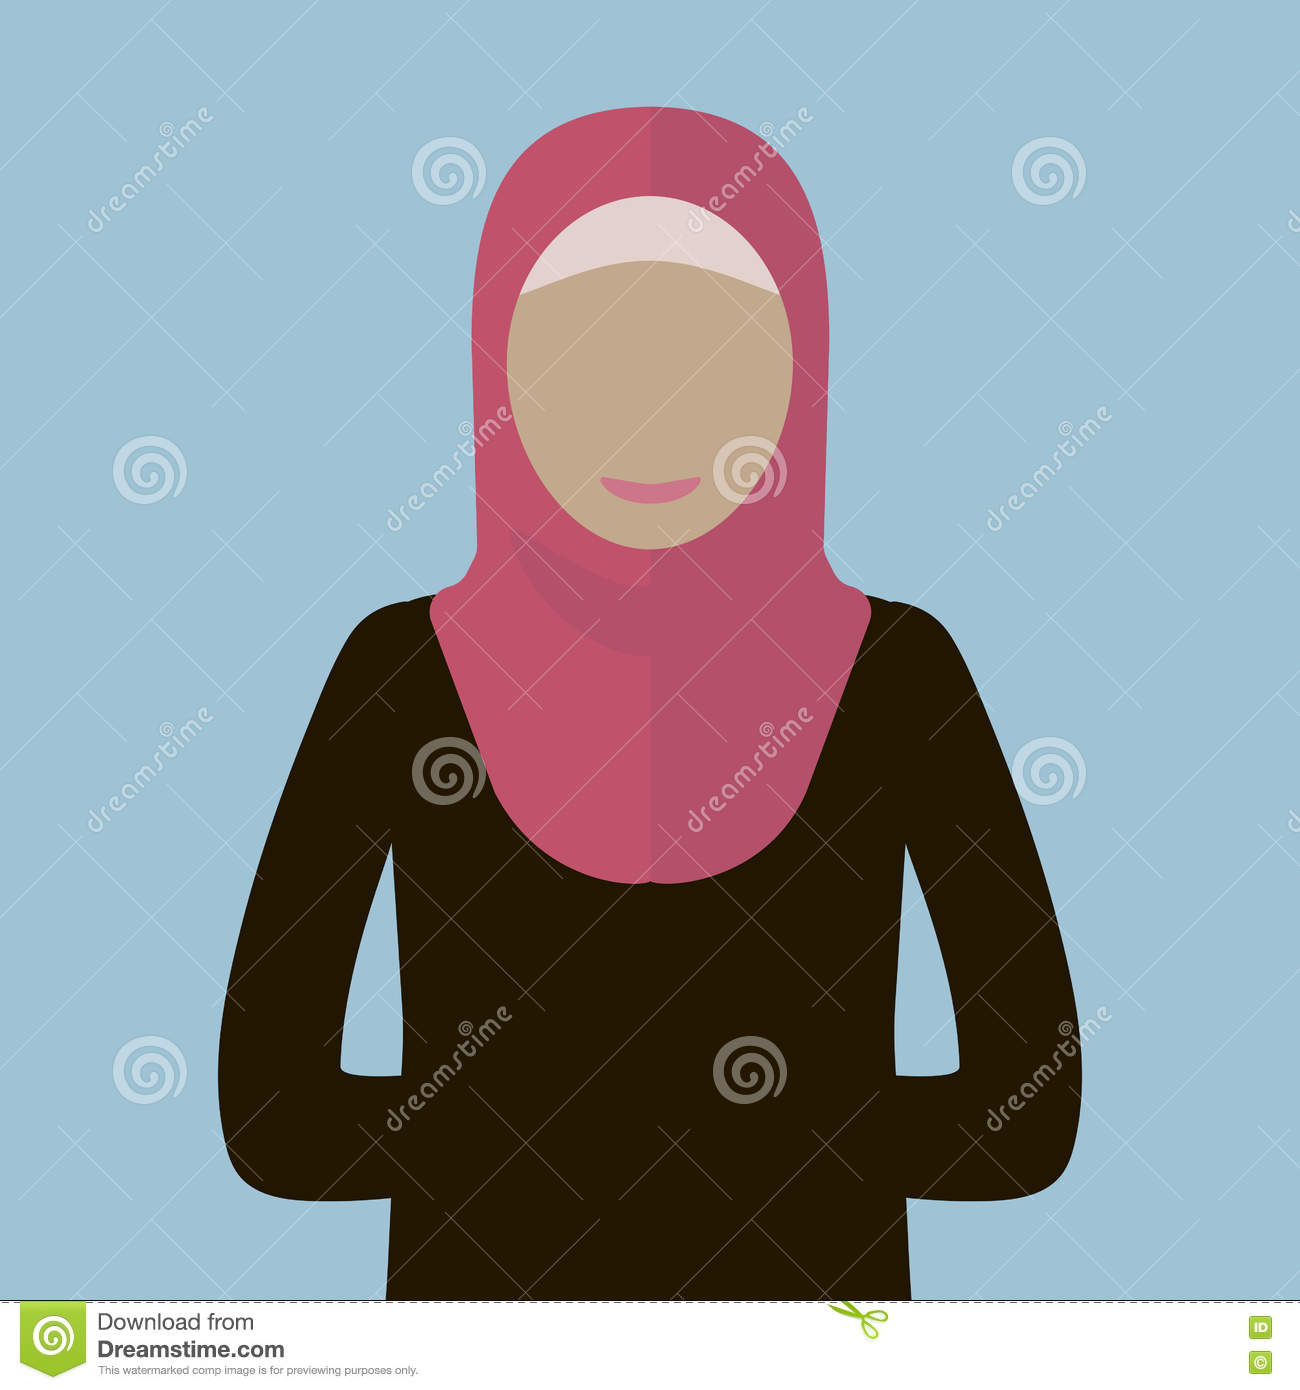 flat muslim girl personals Scottsdale's best 100% free muslim girls dating site meet thousands of single  muslim women in scottsdale with mingle2's free personal ads and chat rooms.